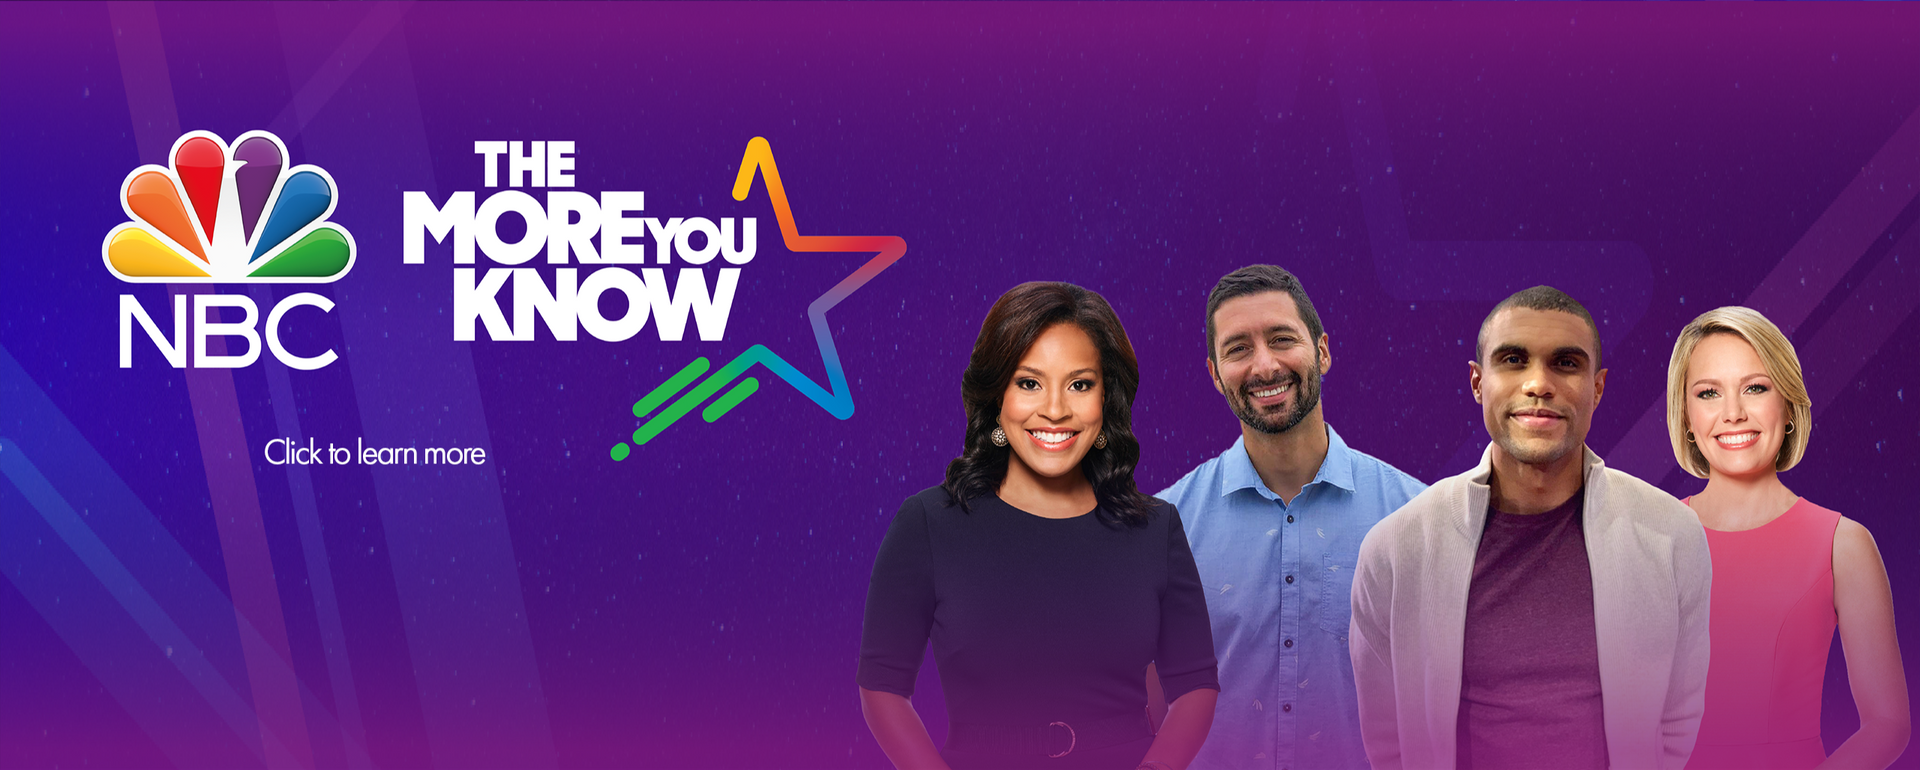 NBC's The More You Know